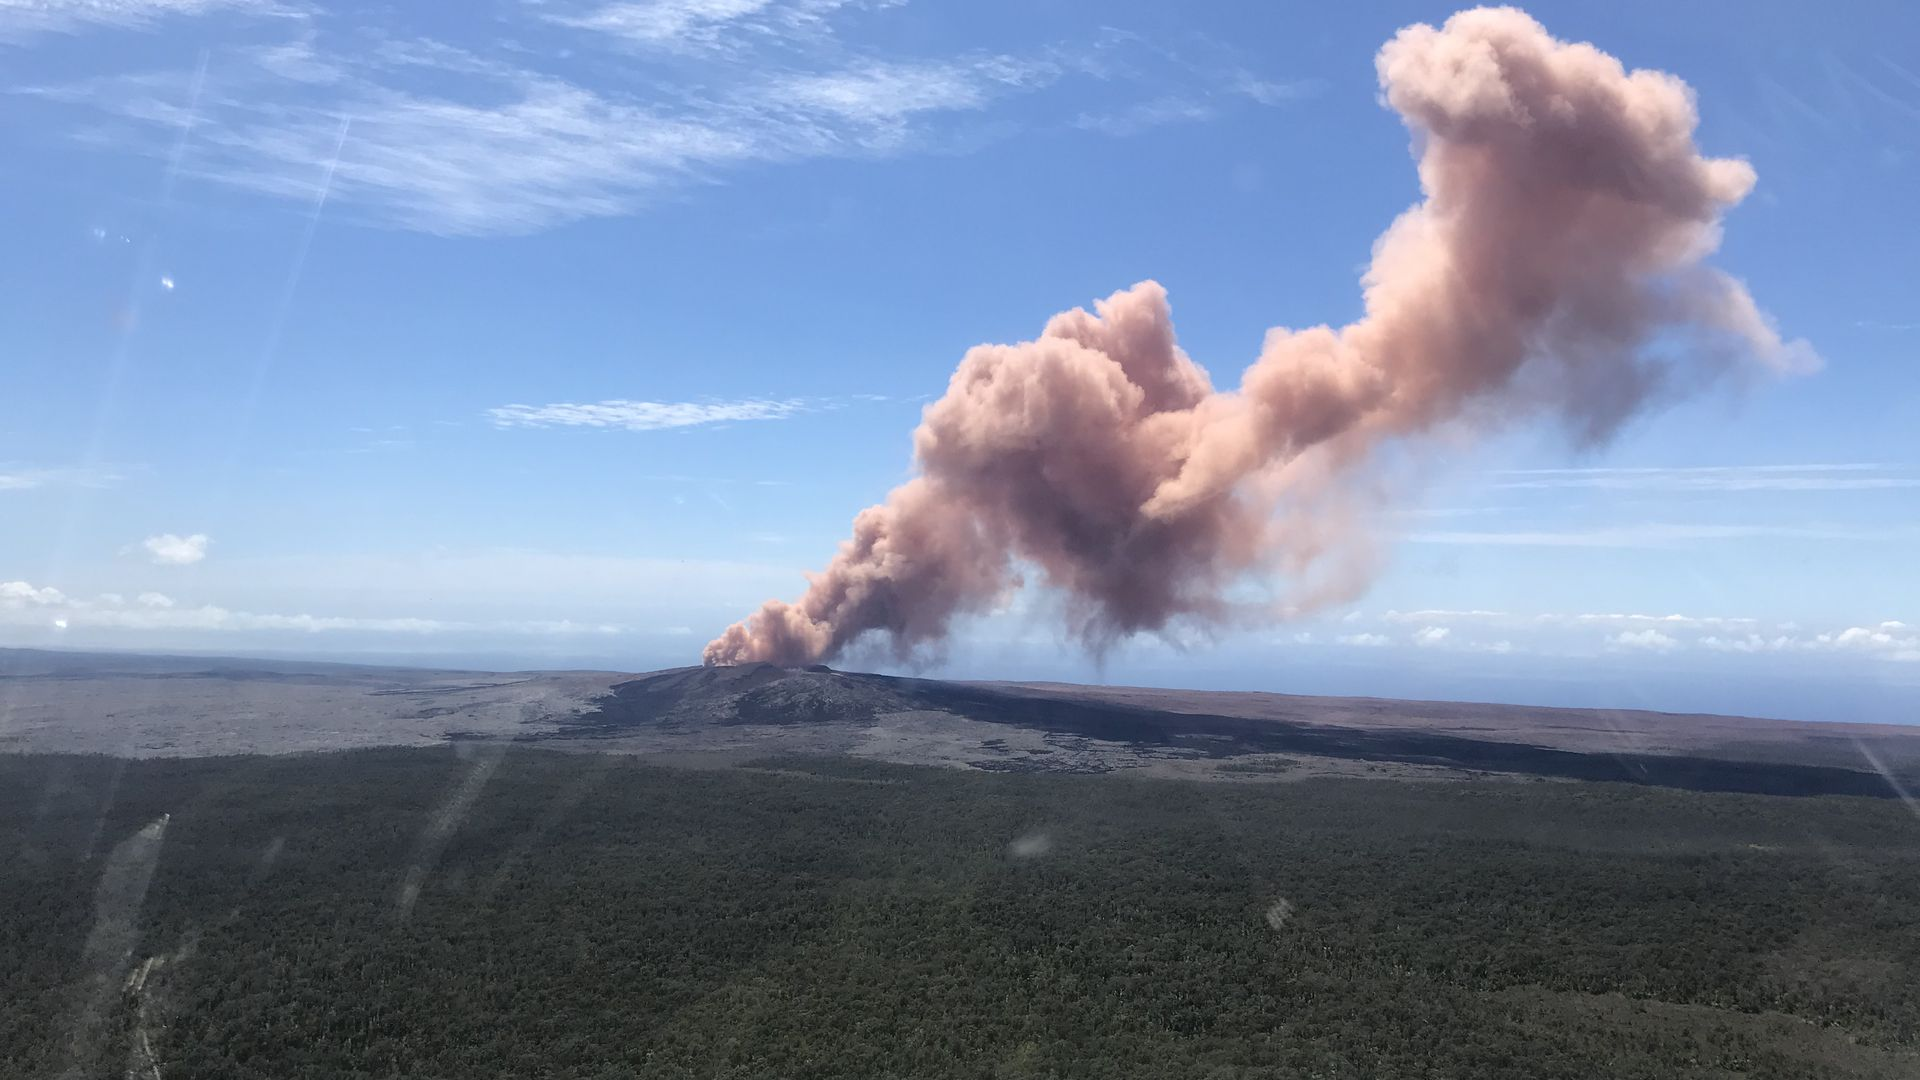 Ash sprews from the Puu Oo crater on Hawaii's Kilauea volcano on May 3